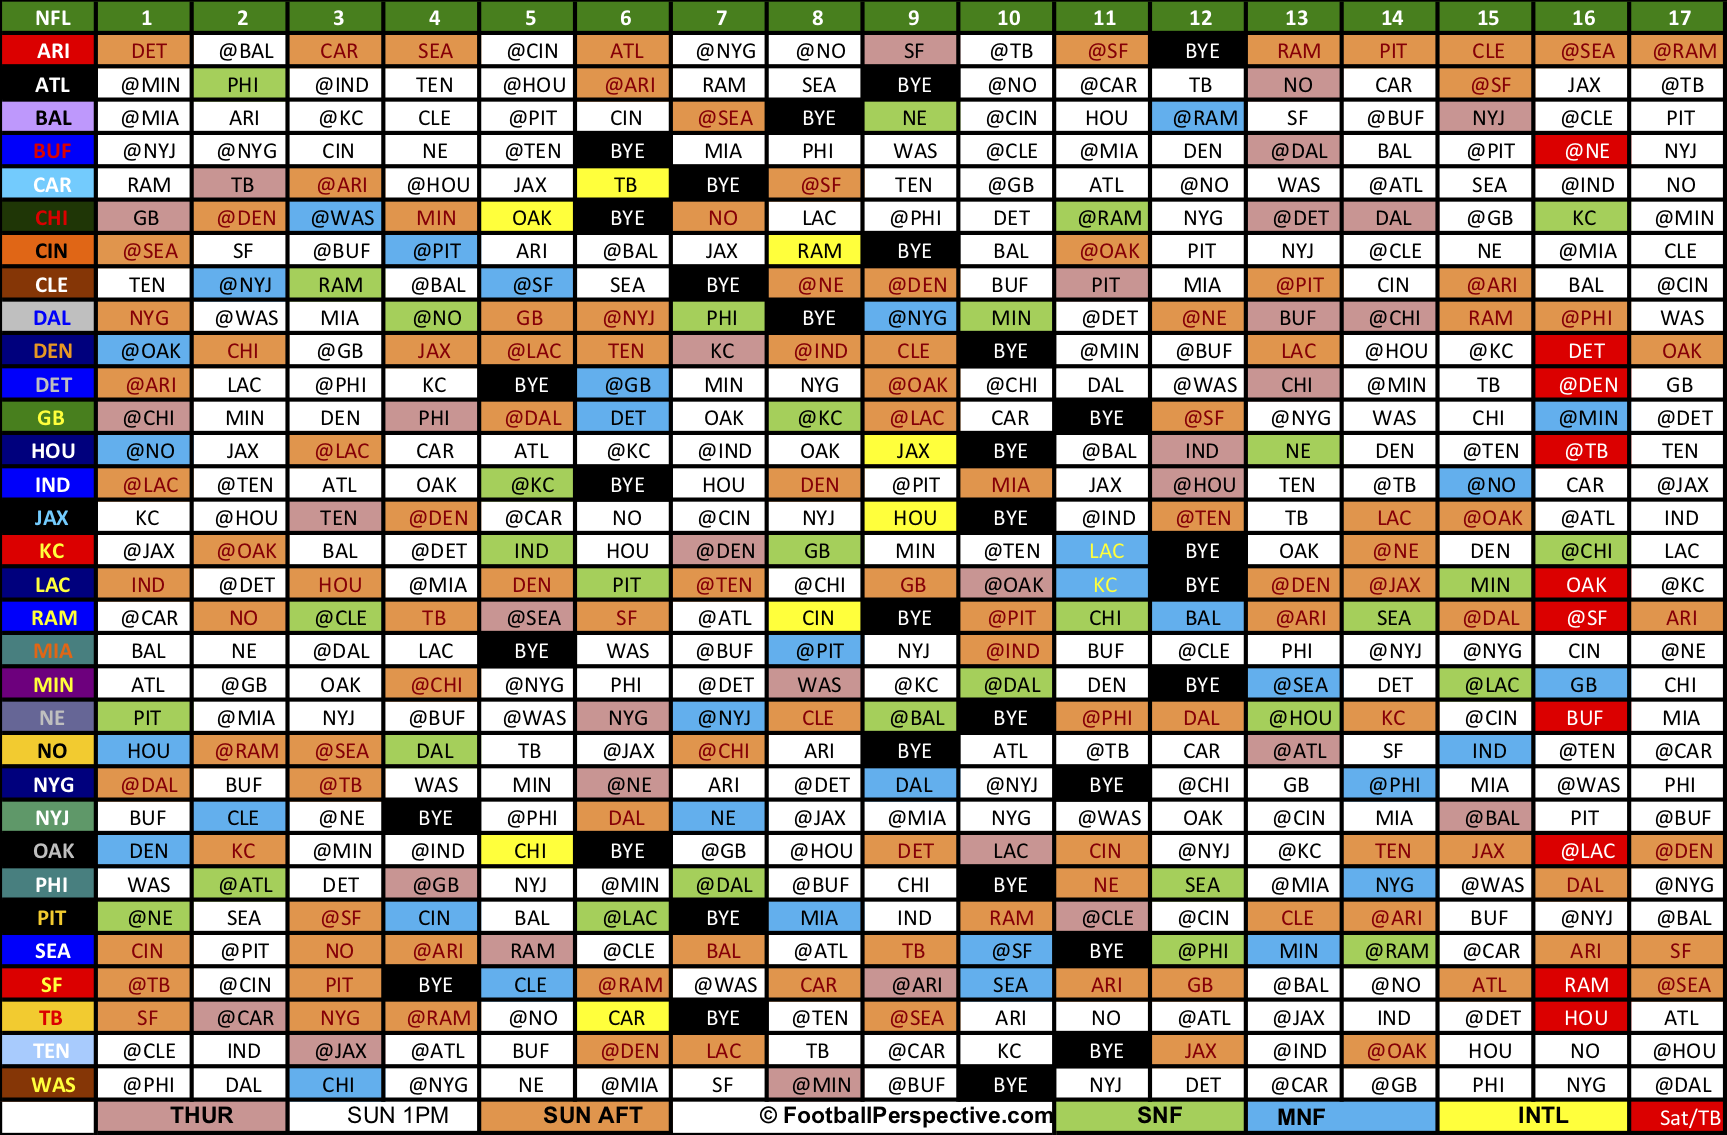 Printable 2019 Nfl Schedule The 2019 NFL Schedule